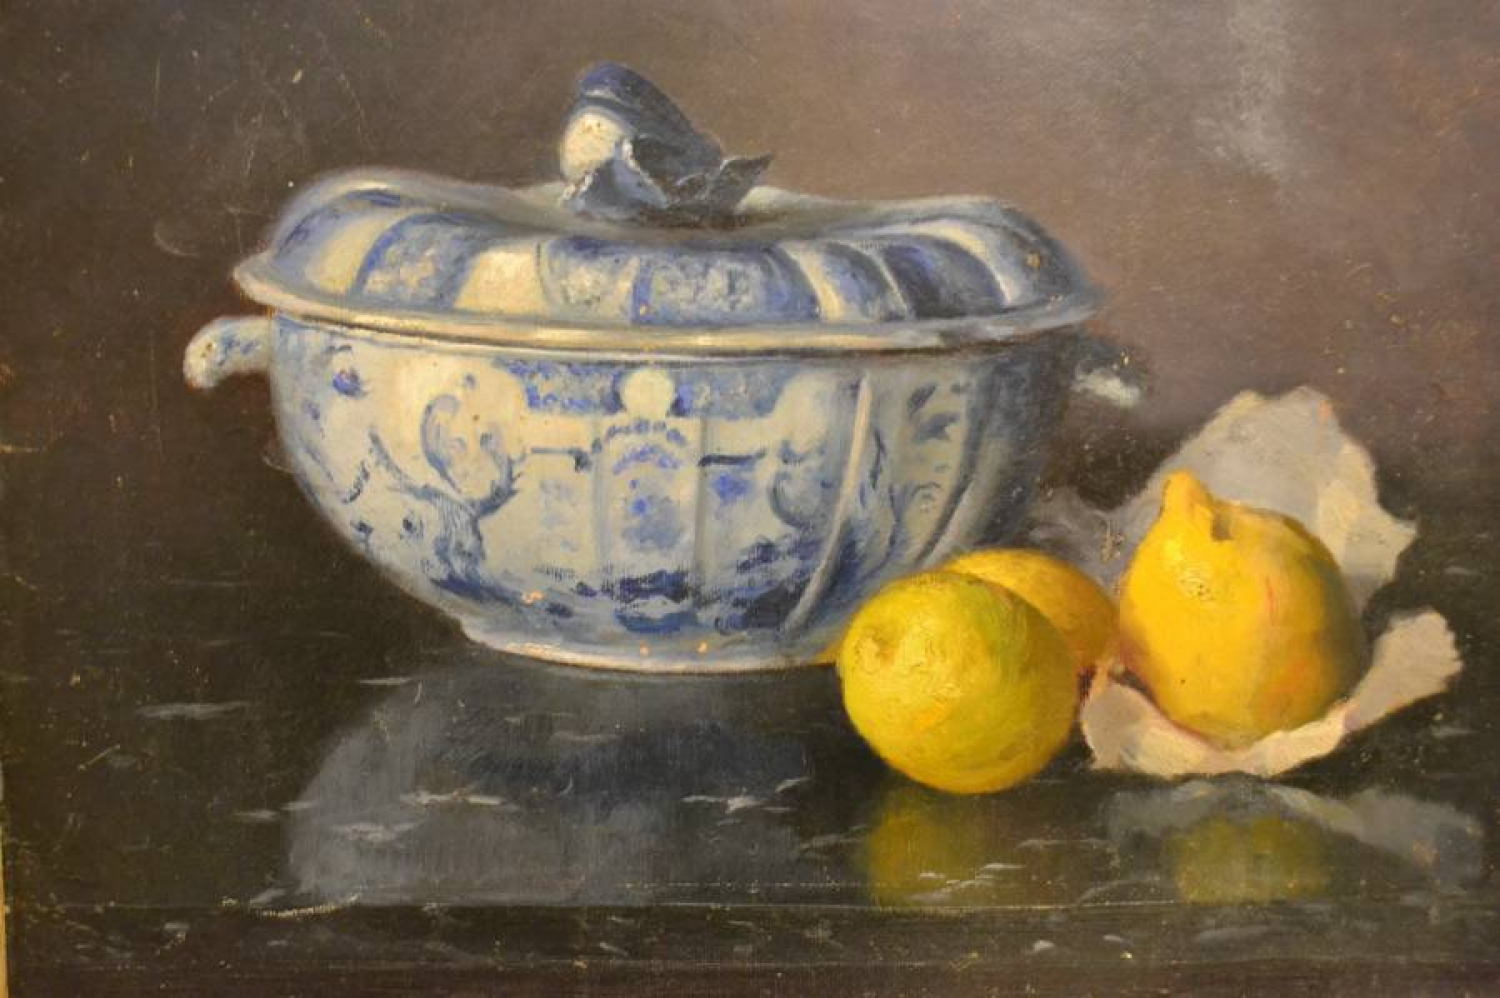 French Still Life, Blue and White Tureen, Signed and Dated